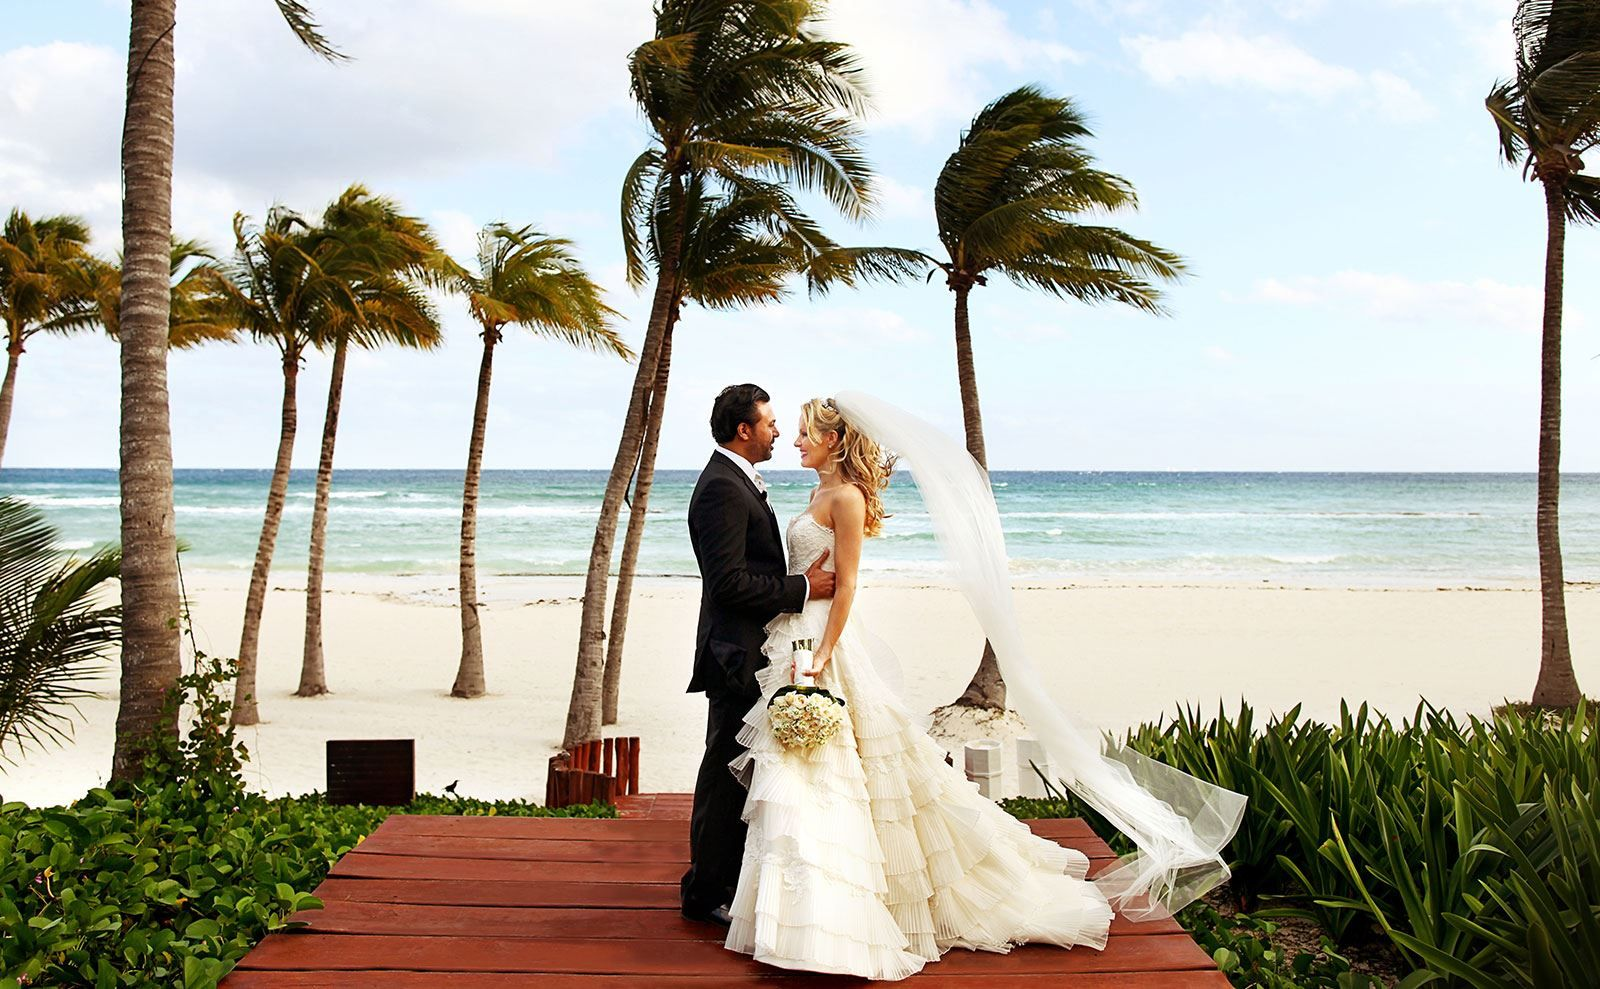 all inclusive beach wedding destinations%0A Grand Velas Riviera Maya luxury all inclusive honeymoons made easy  This is  one of the best all inclusive resorts in Mexico and the Caribbean